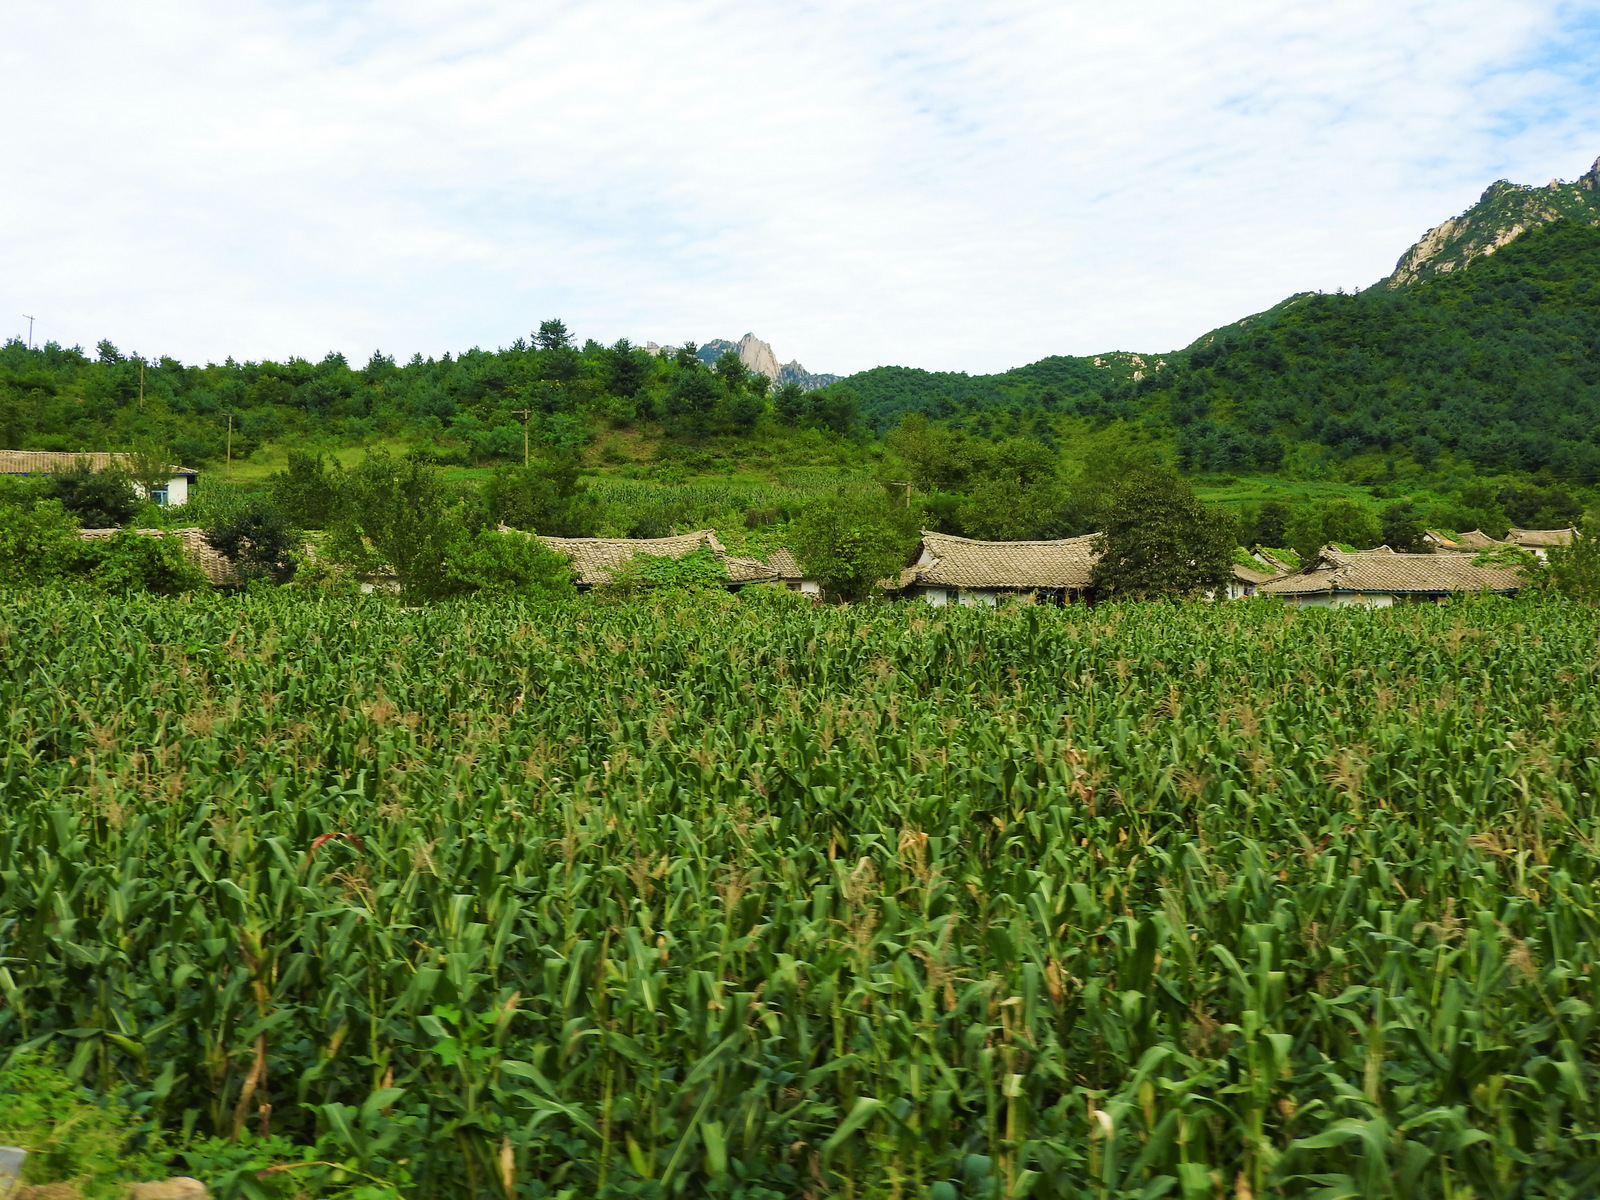 North Korea has suffered harsh periods of drought and starvation. The long-imposed brutal U.S. sanctions and destruction of the country don't help matters. Yet, traveling over a hundred kilometers south from Pyongyang, we passed endless lush fields of corn and rice.